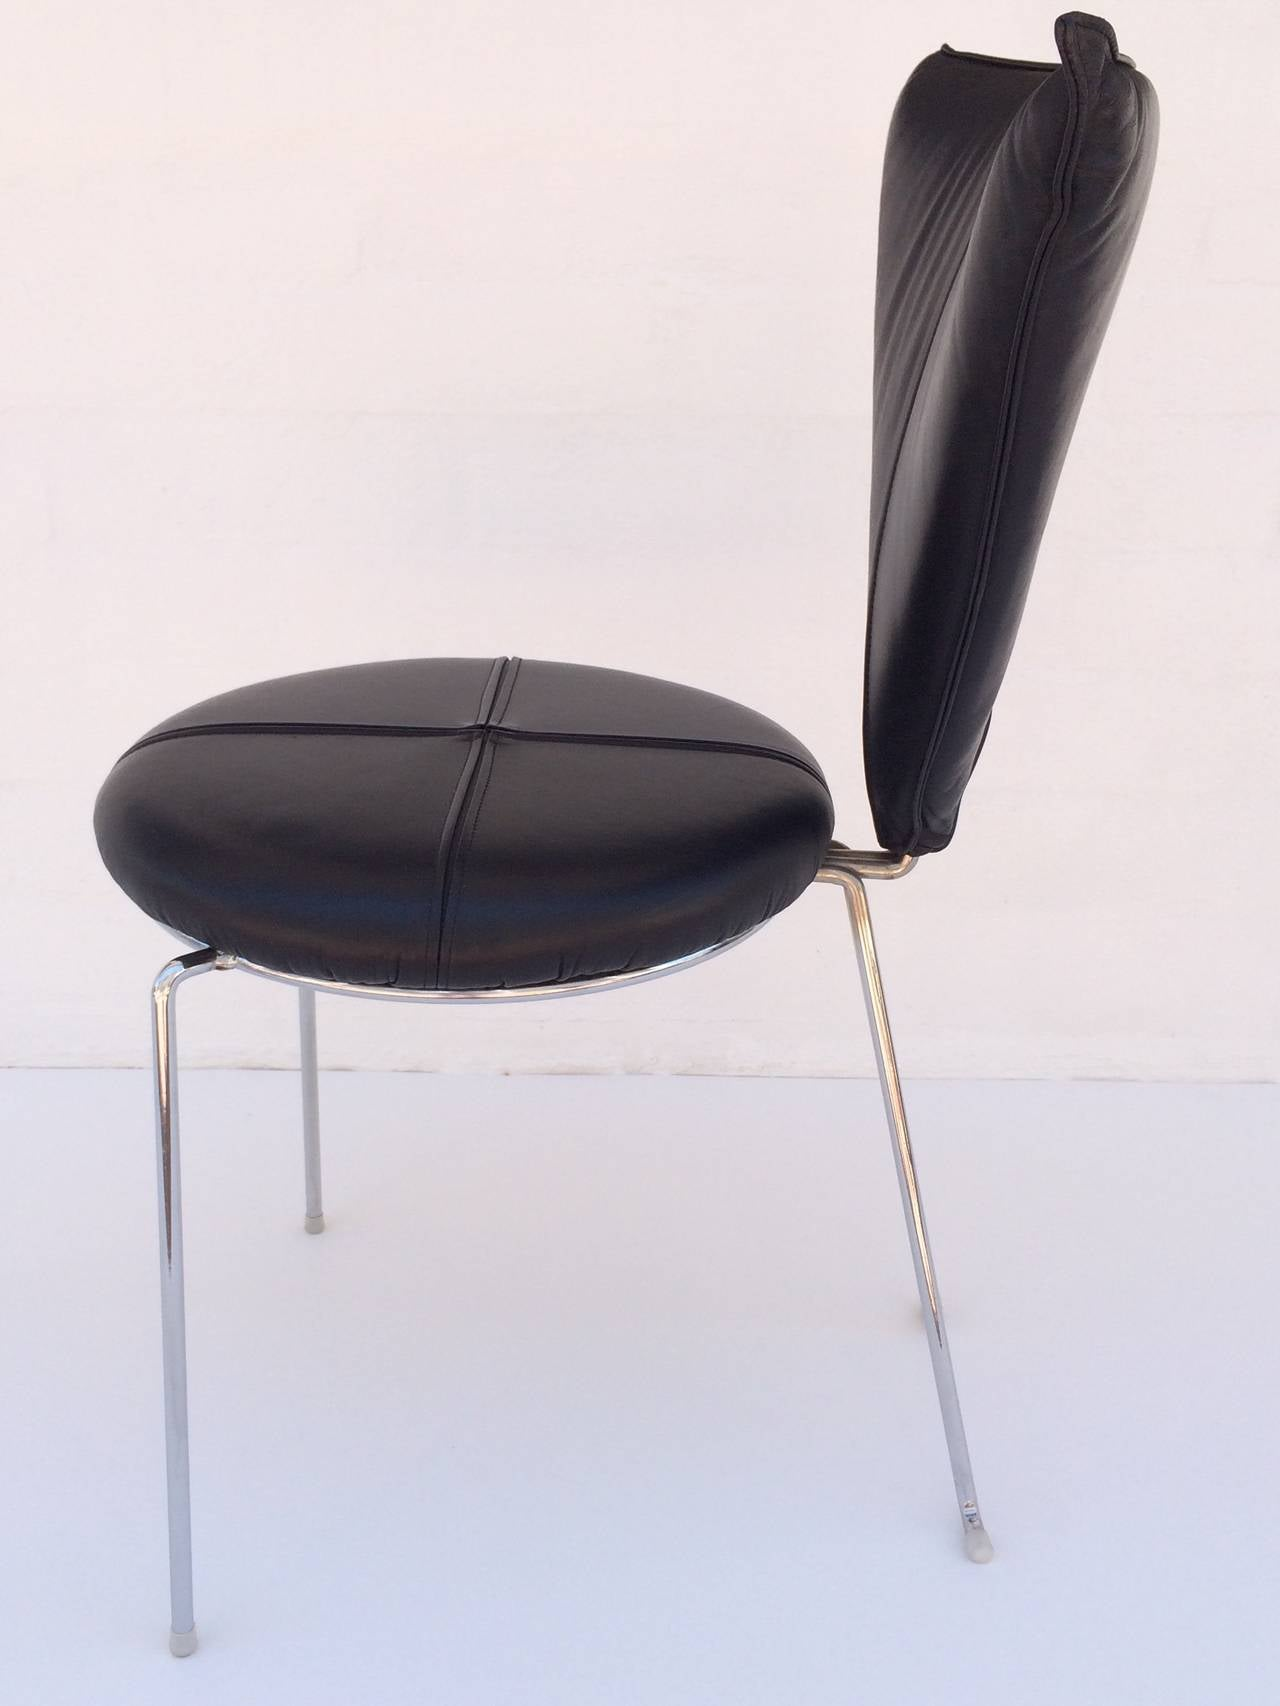 Rare Set of Four Black Leather and Chrome Chairs by Helmut Lubke & Co In Excellent Condition For Sale In Palm Springs, CA